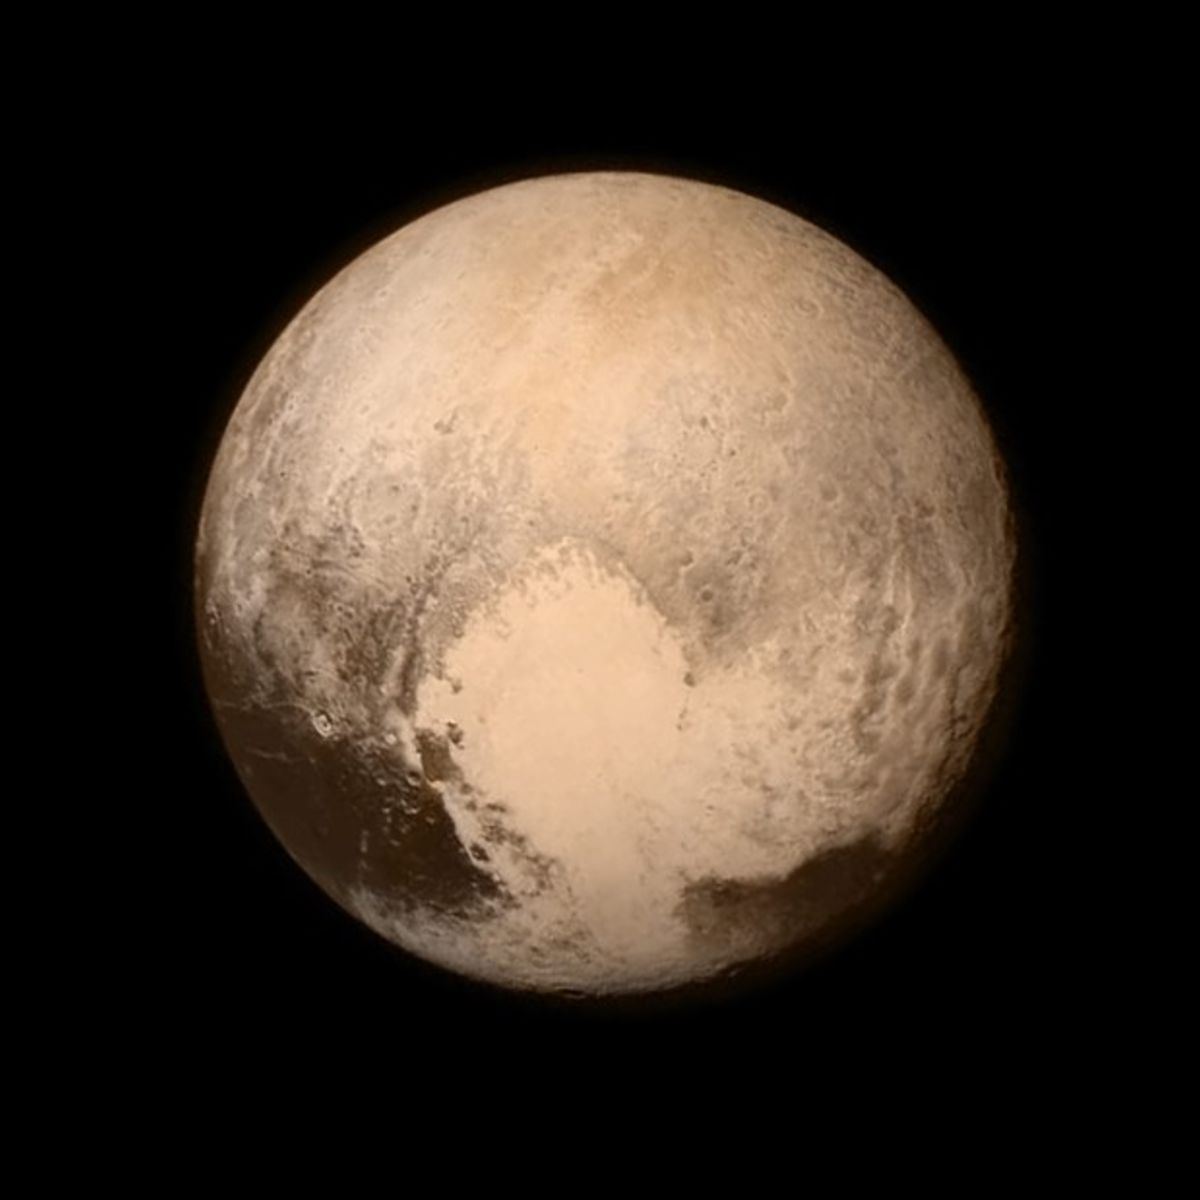 150714084003-01-pluto-horizon-0714-super-169.jpg